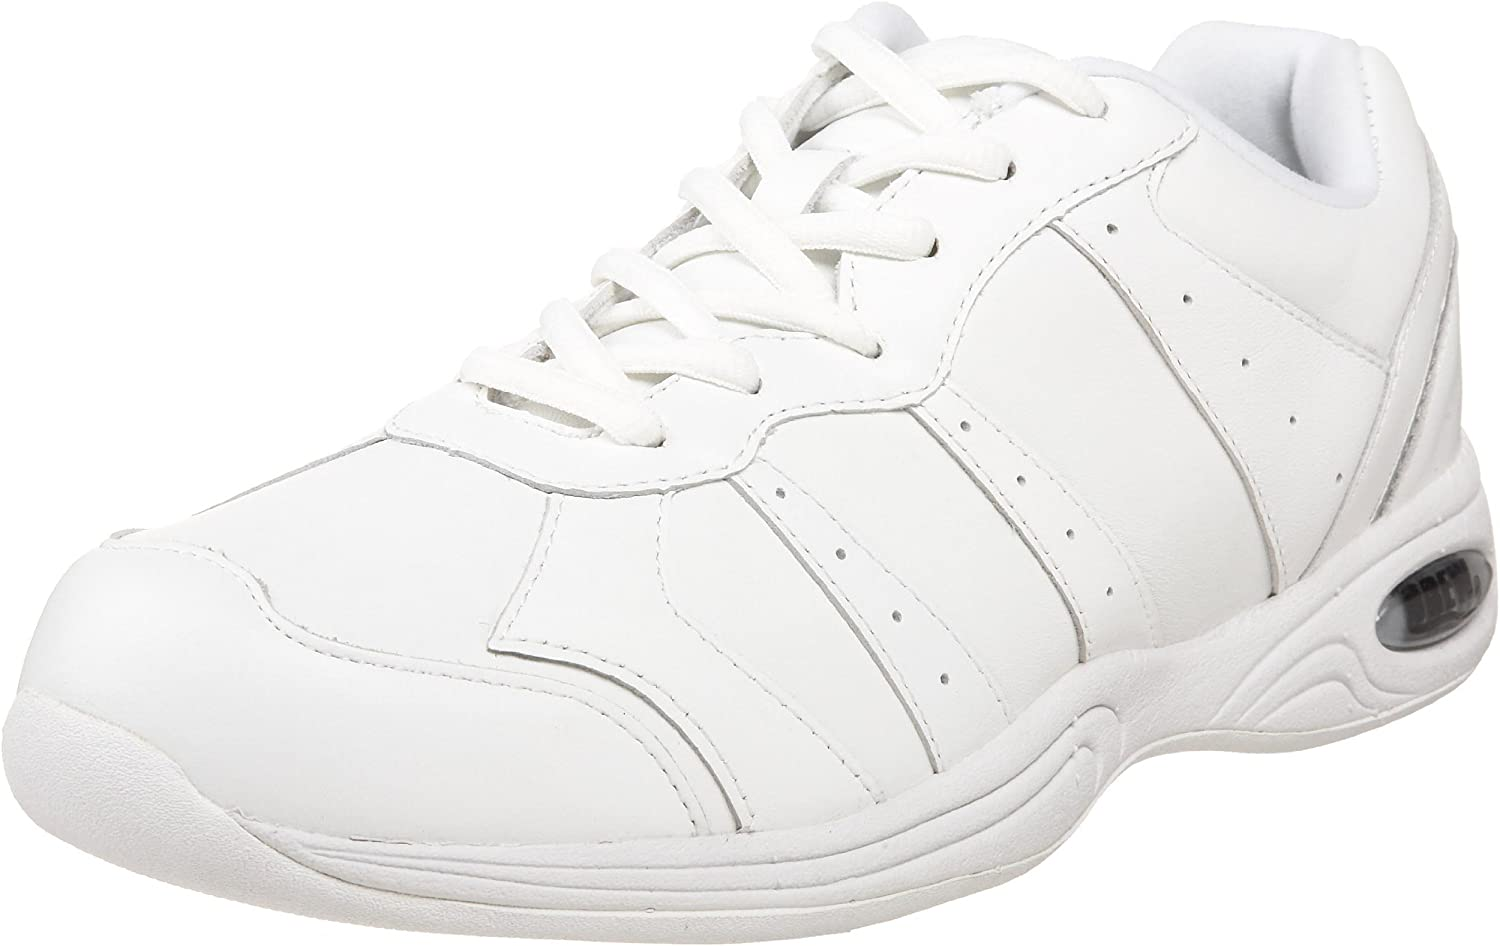 Drew shoes Women's Hara Sneaker